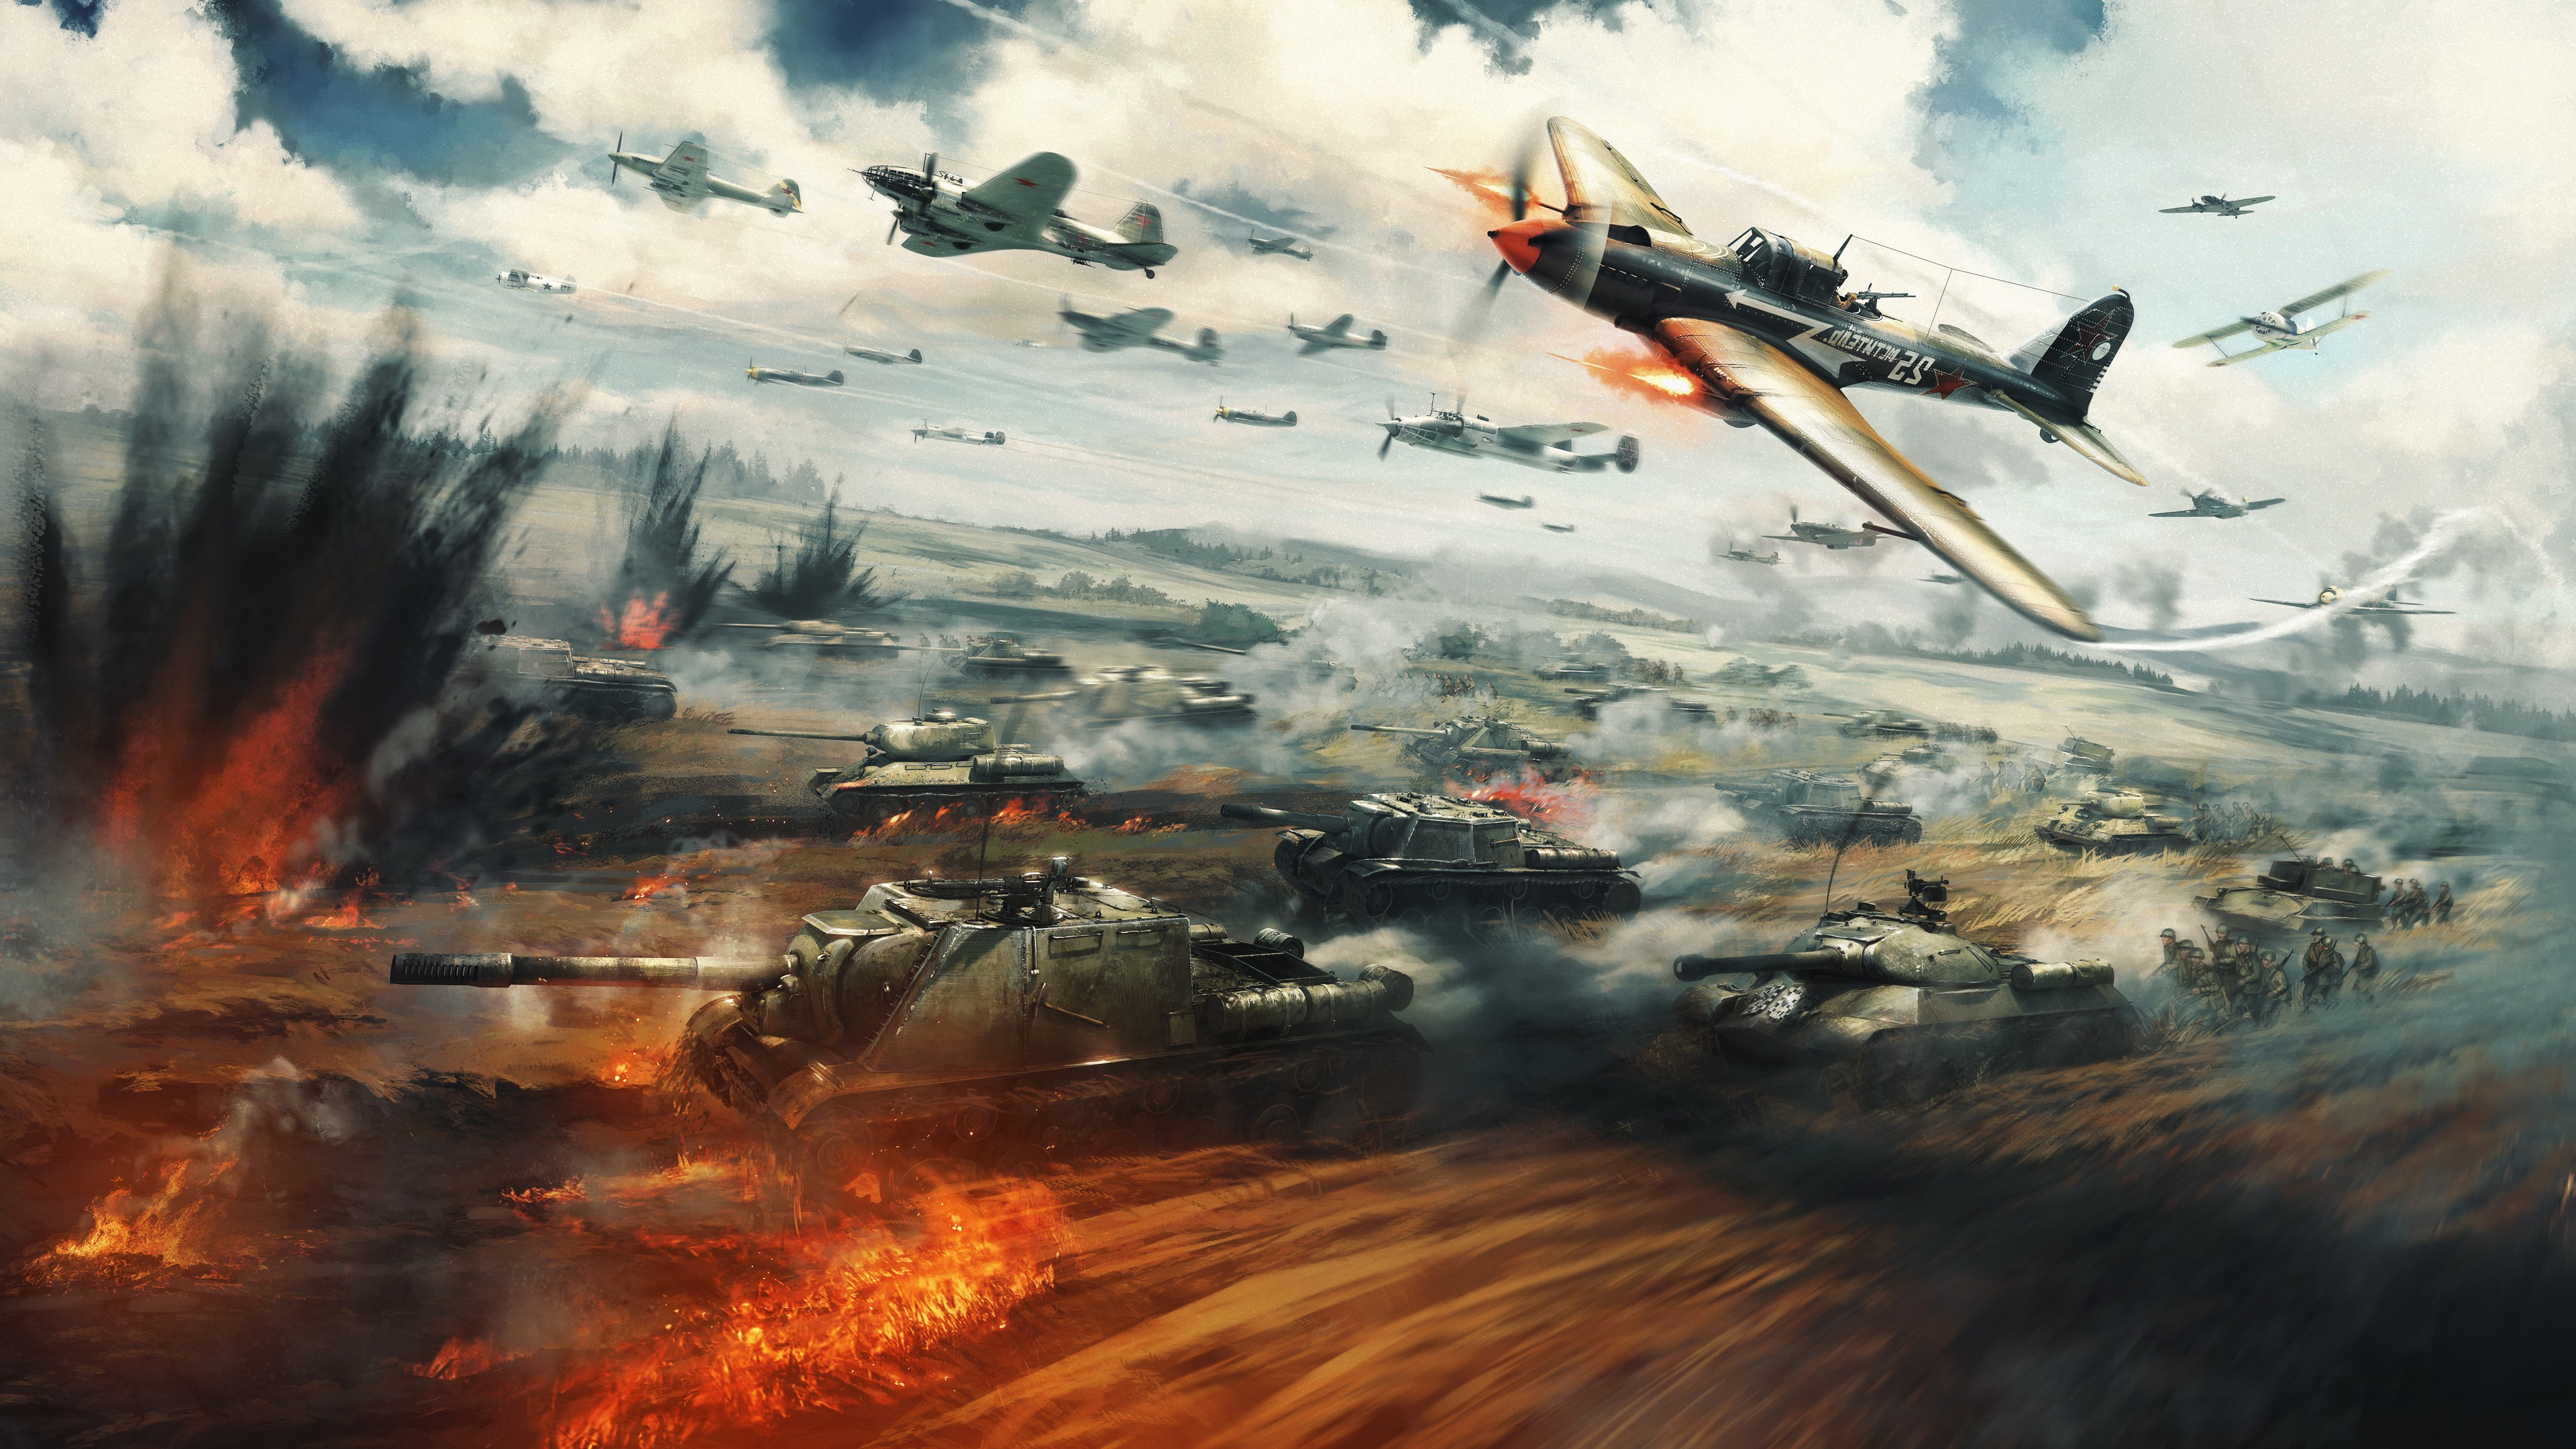 War Thunder 4k, HD Games, 4k Wallpapers, Images